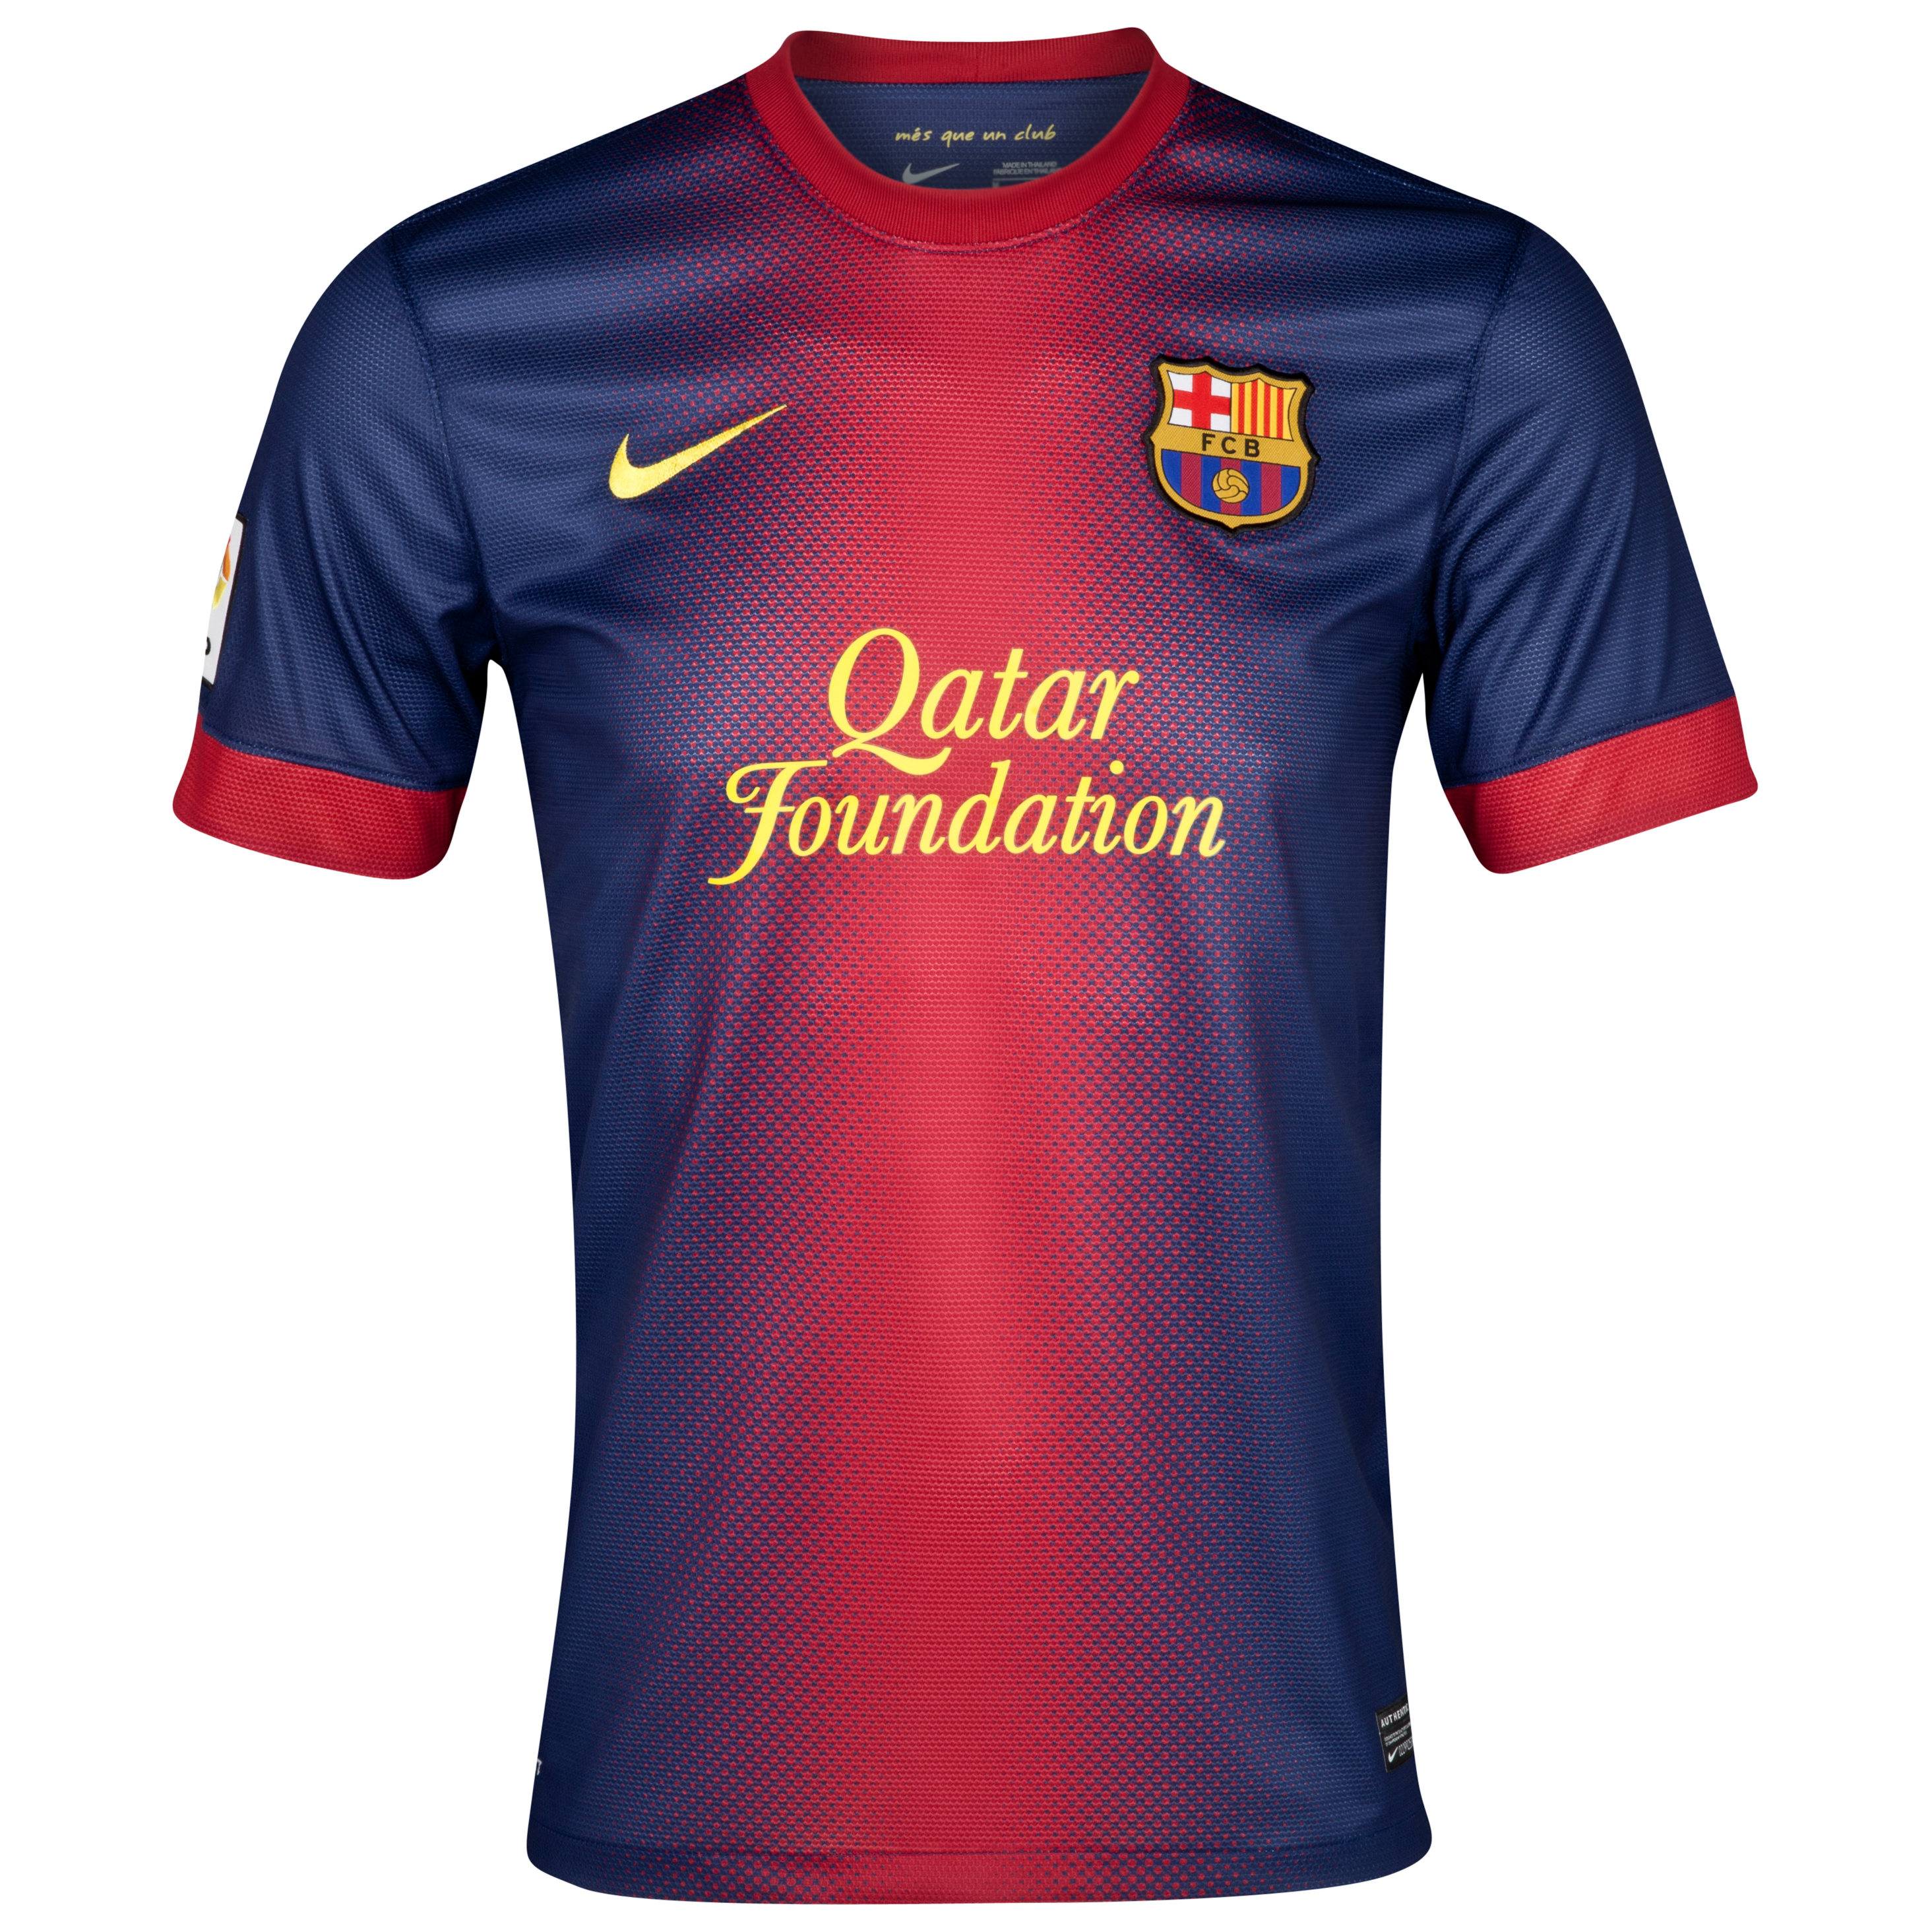 Barcelona Home Shirt 2012/13 - Youths with Xavi 6 printing. for 50€